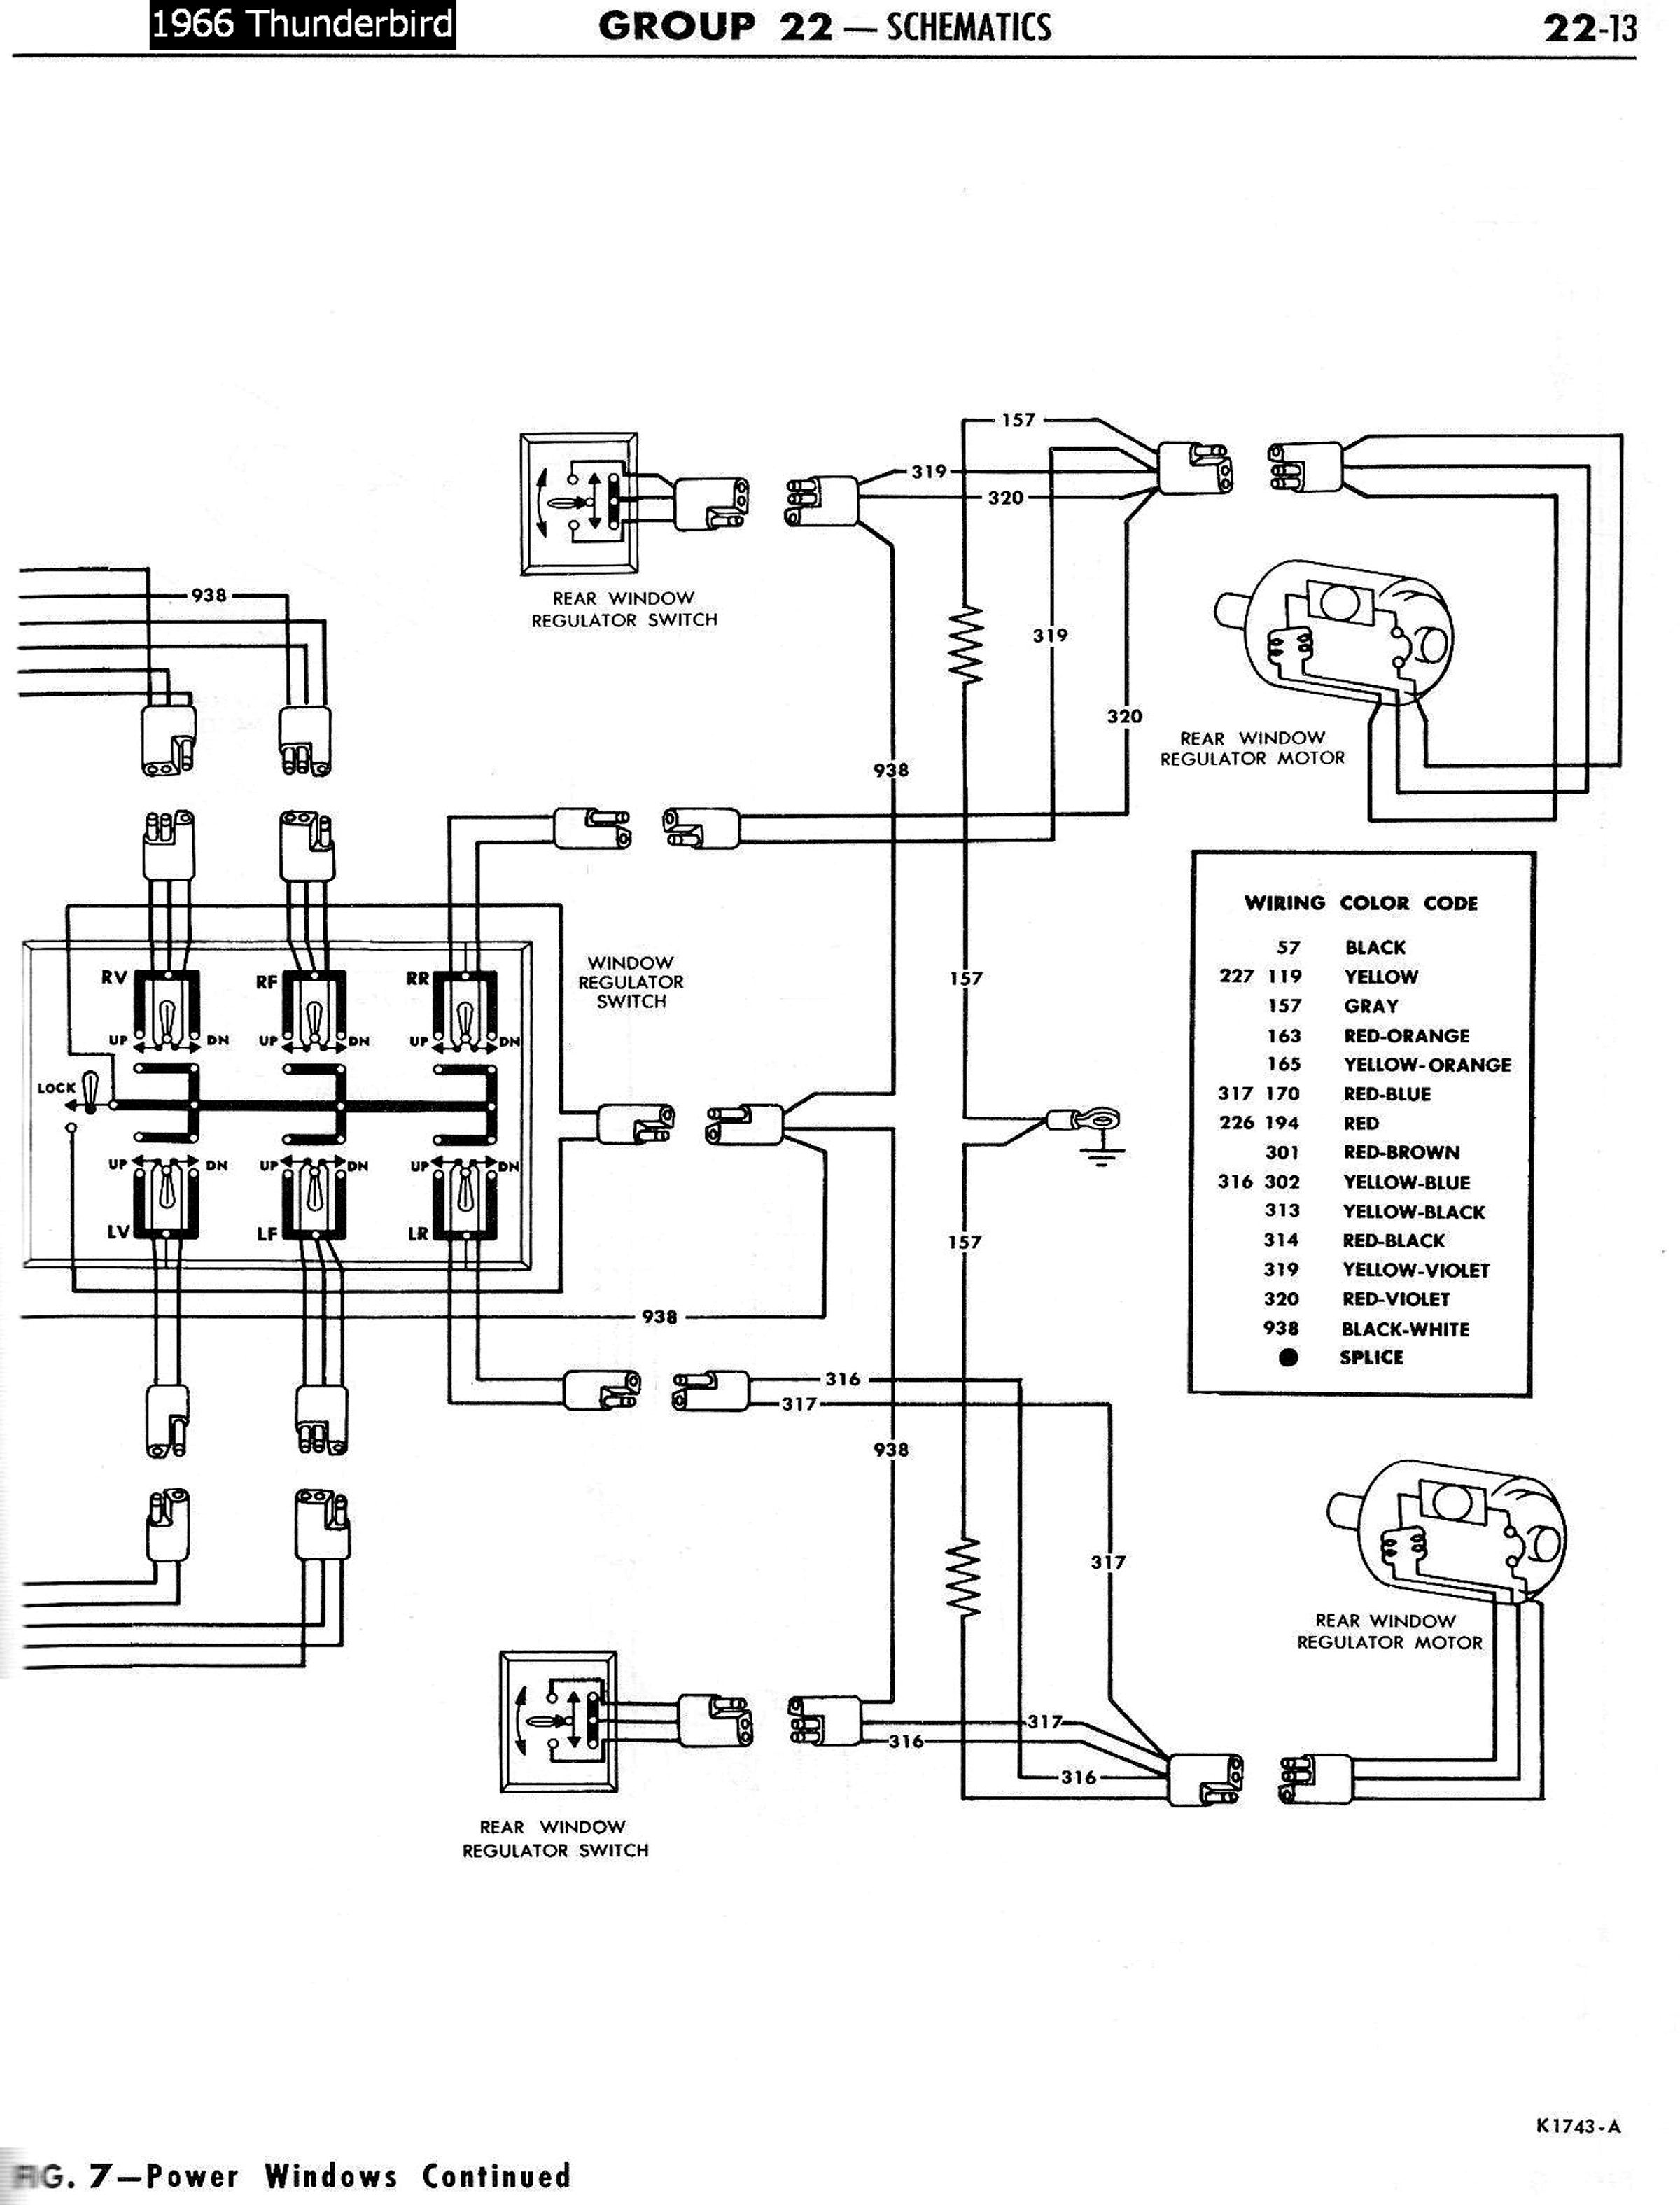 1969 F100 Wiring Harness | Wiring Liry  Ford F Wiring Schematic on ford f-350 pickup, ford excursion wiring schematic, 2001 ford wiring schematic, ford ranger wiring schematic, ford f800 wiring schematic, ford e-450 wiring schematic, ford e-350 van wiring schematic, ford escape wiring schematic, ford f150 wiring schematic, ford super duty wiring schematic, ford expedition wiring schematic, ford f550 wiring schematic, ford flex wiring schematic, ford f53 wiring schematic, ford radio wiring schematic, ford f-350 lifted trucks, ford f250 wiring schematic, ford f-series dually diesel, ford f-350 regular cab, ford 7 pin plug schematic,